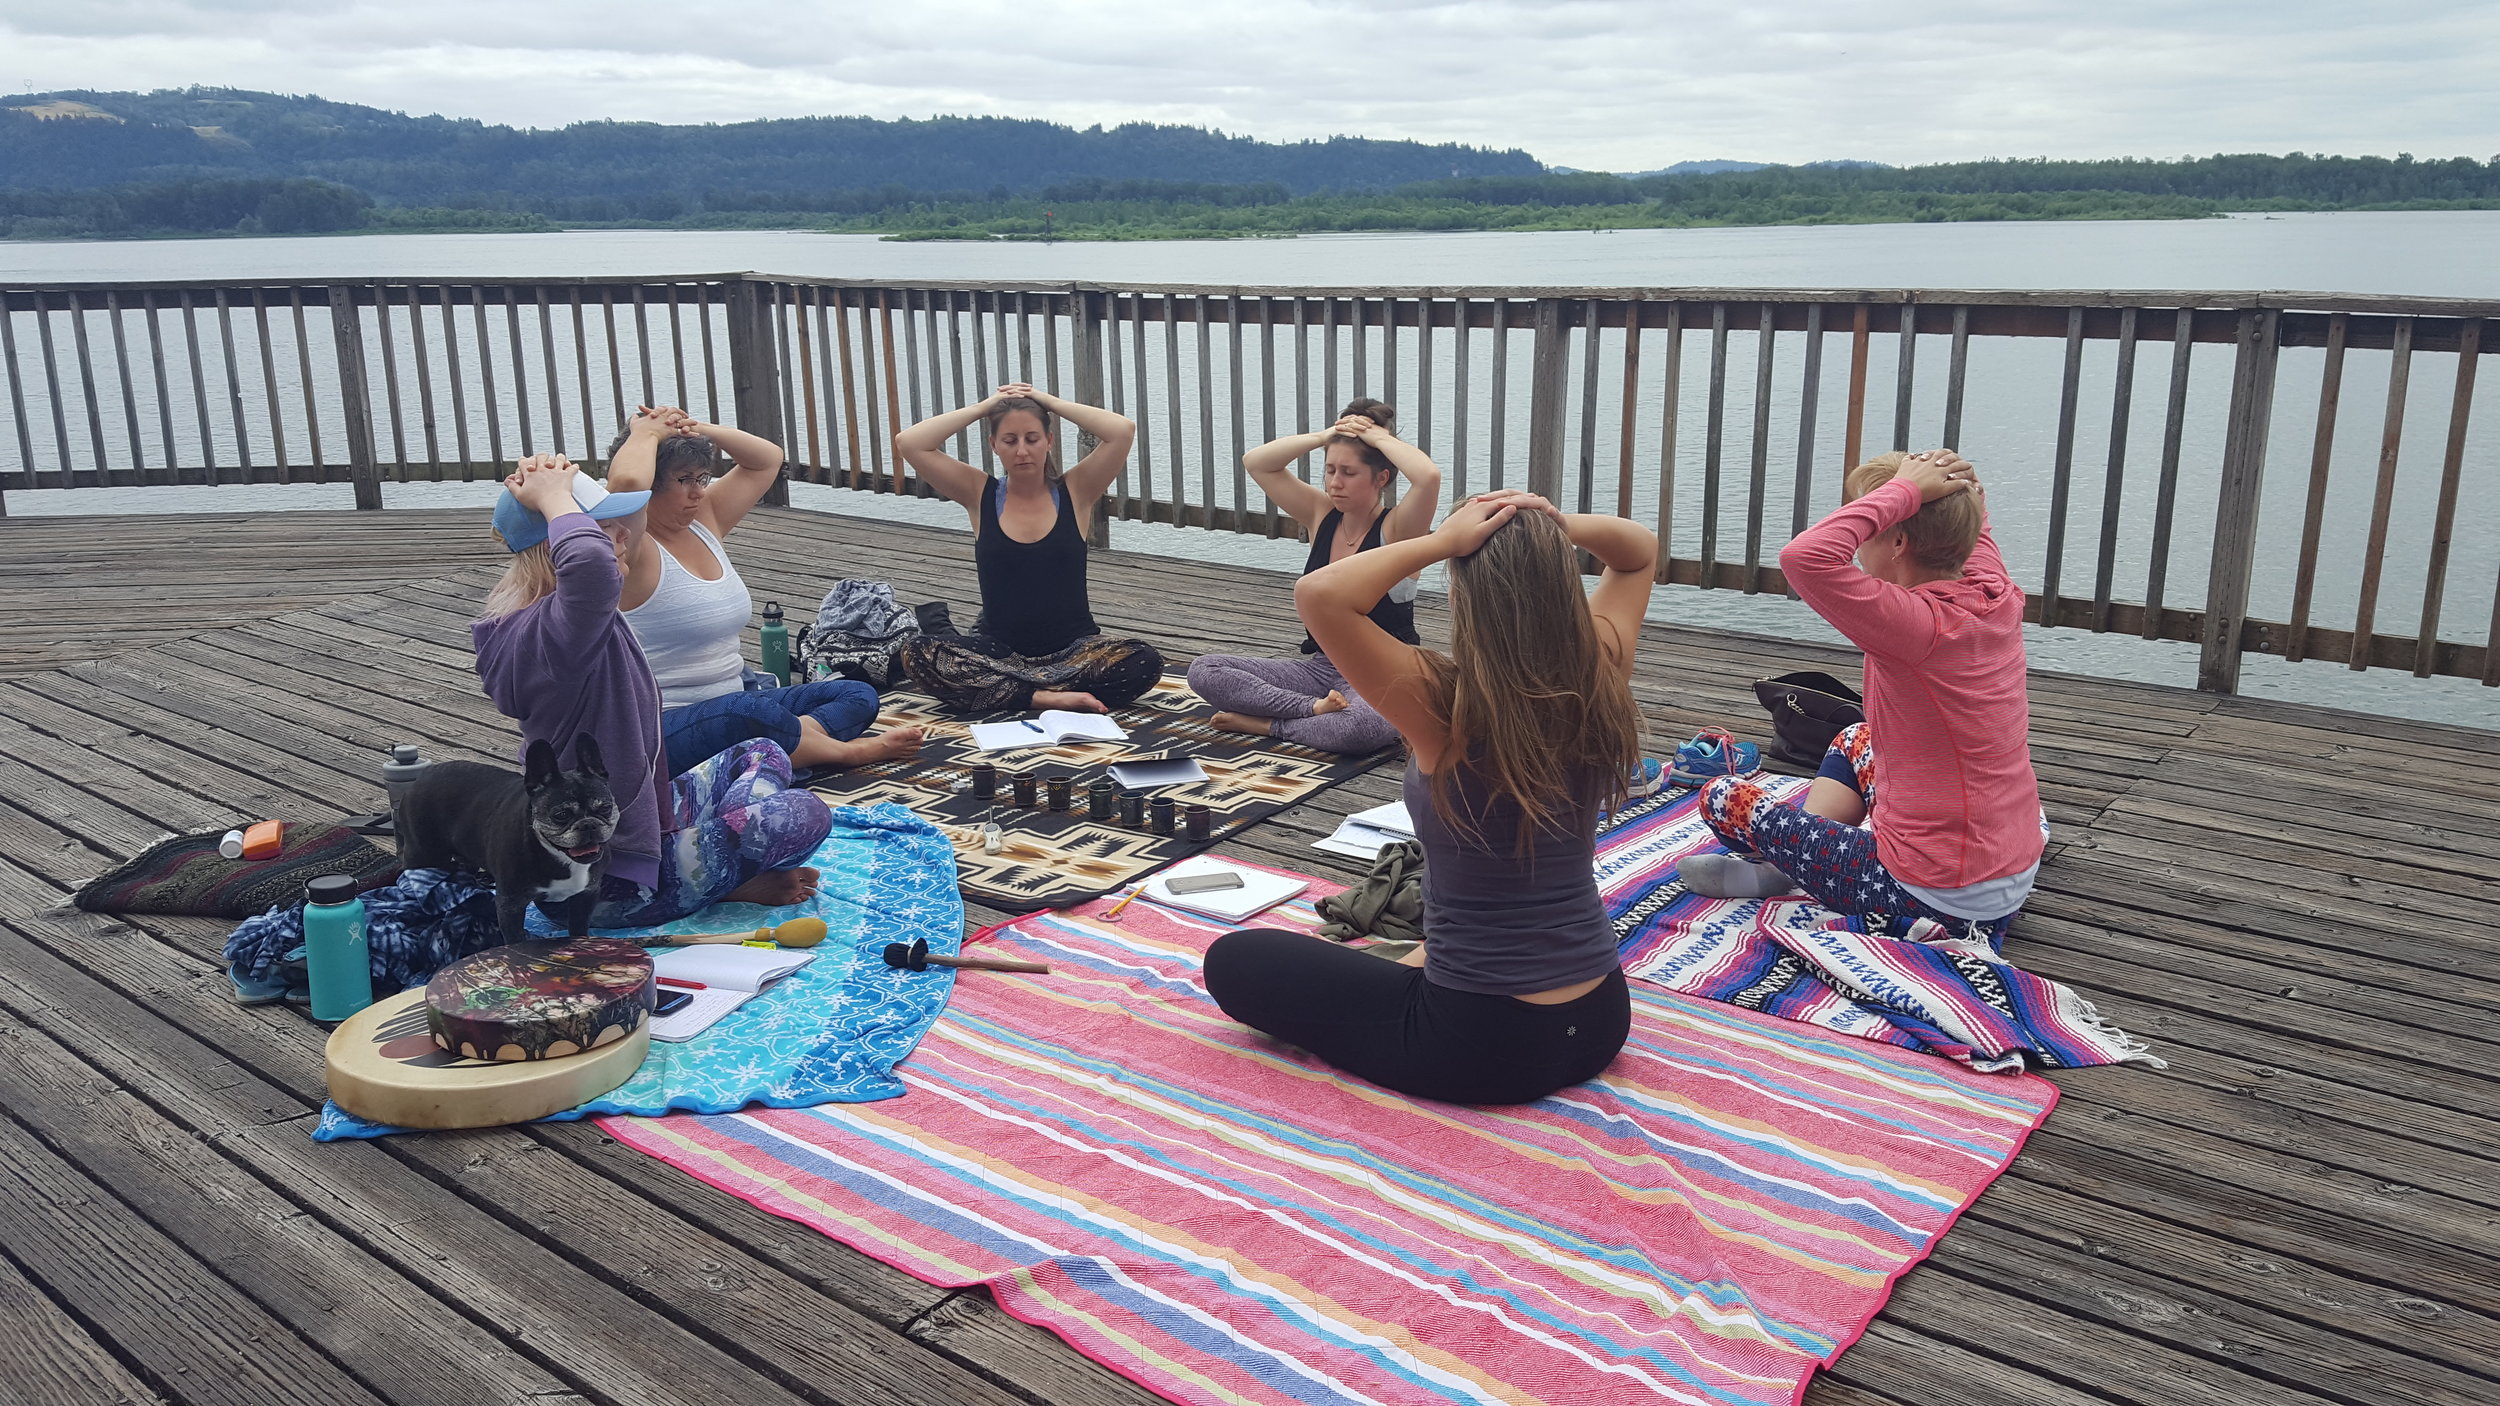 200 hr Yoga Teacher Training near Vancouver WA and Portland OR, classes by donation camas/washougal